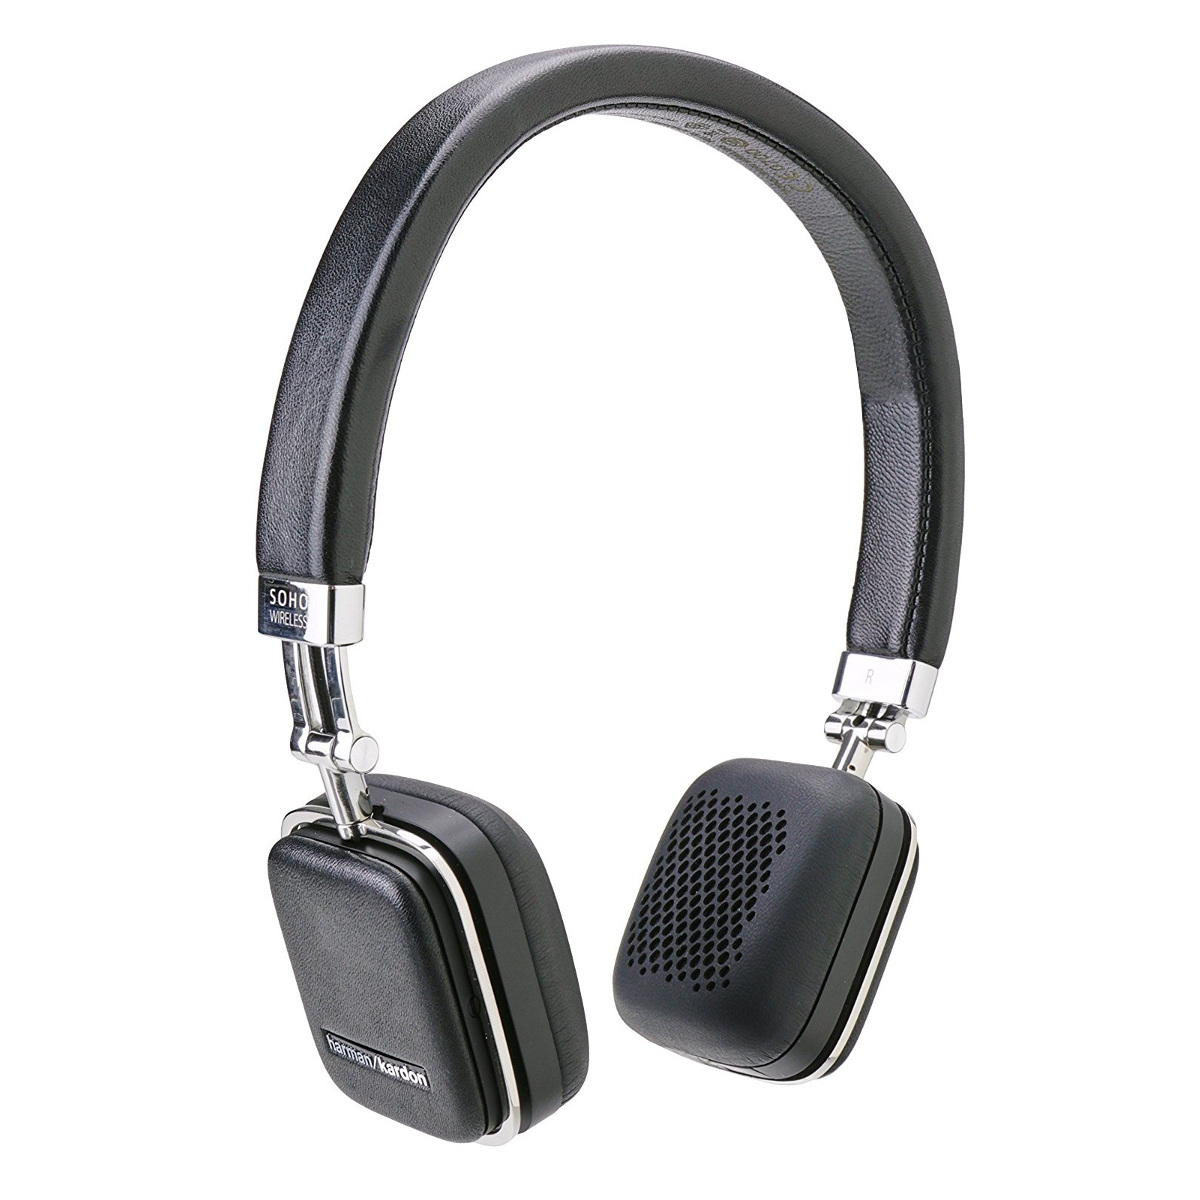 Image 1 : [Promo] Le casque Harman Kardon Soho Wireless à 100 €